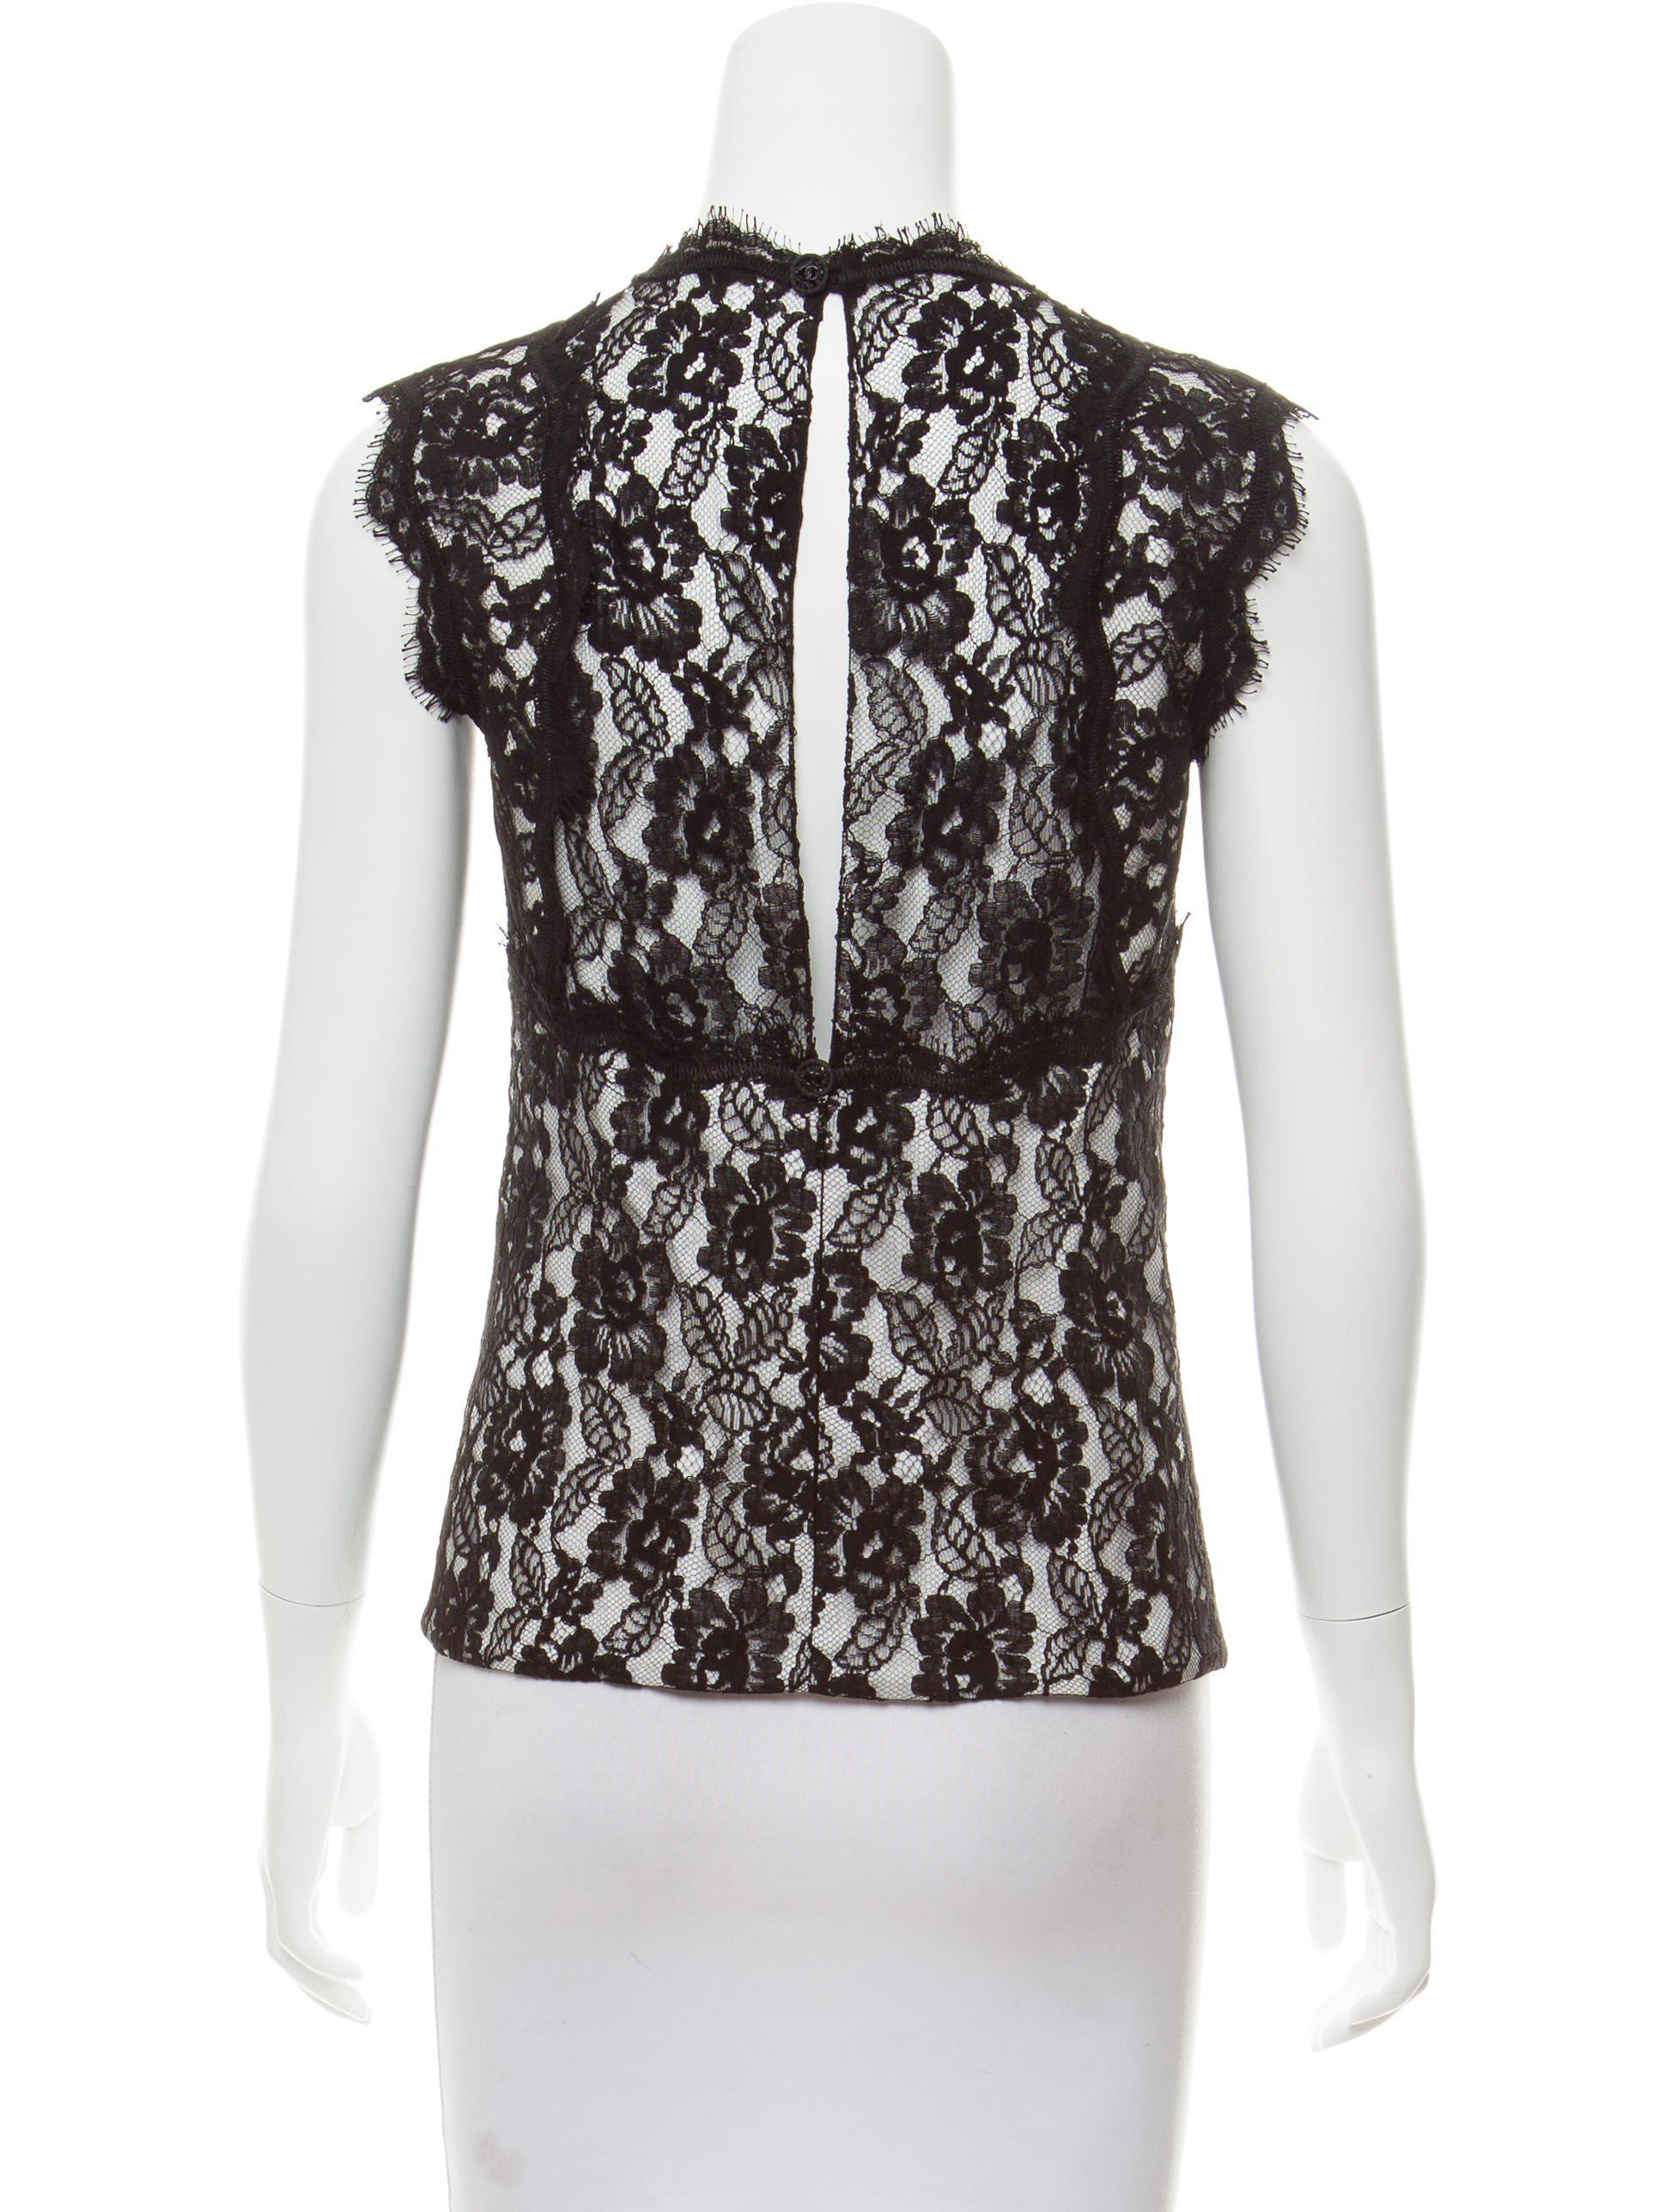 b251902a422 Chanel Lace Blouse | RLDM